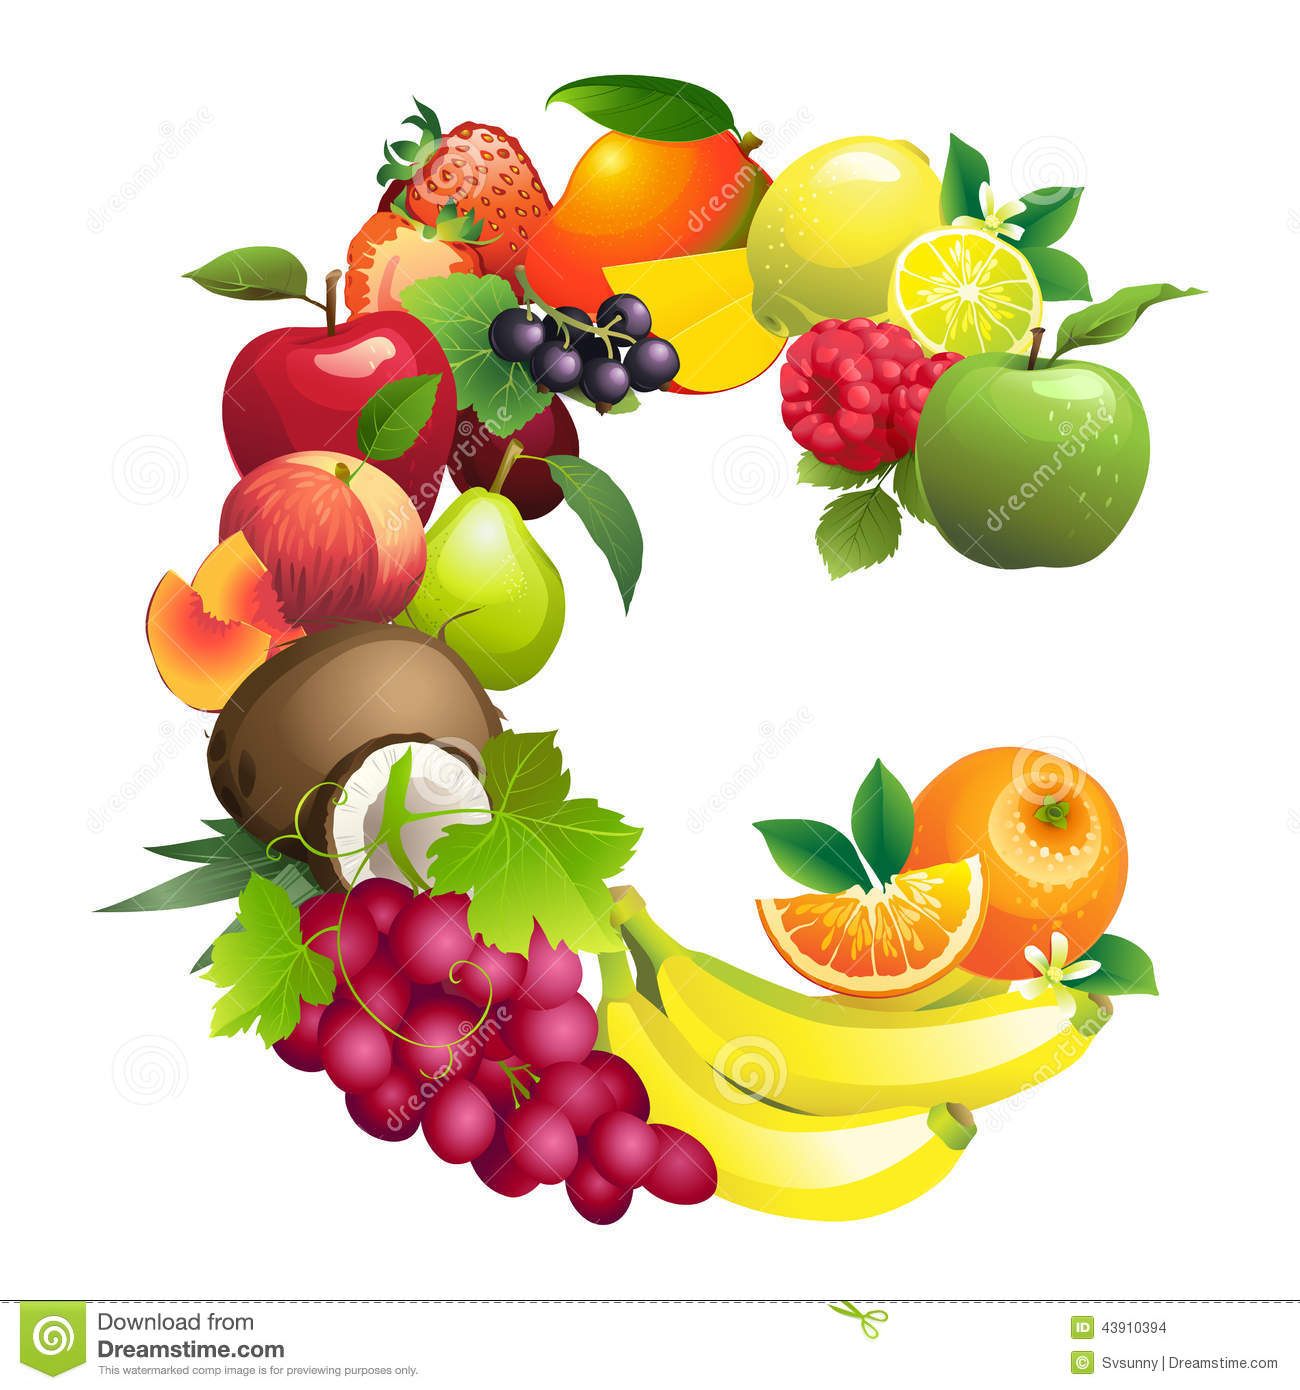 fruits that start with the letter c letter c composed of different fruits with leaves stock 21911 | letter c composed different fruits leaves vector illustration 43910394